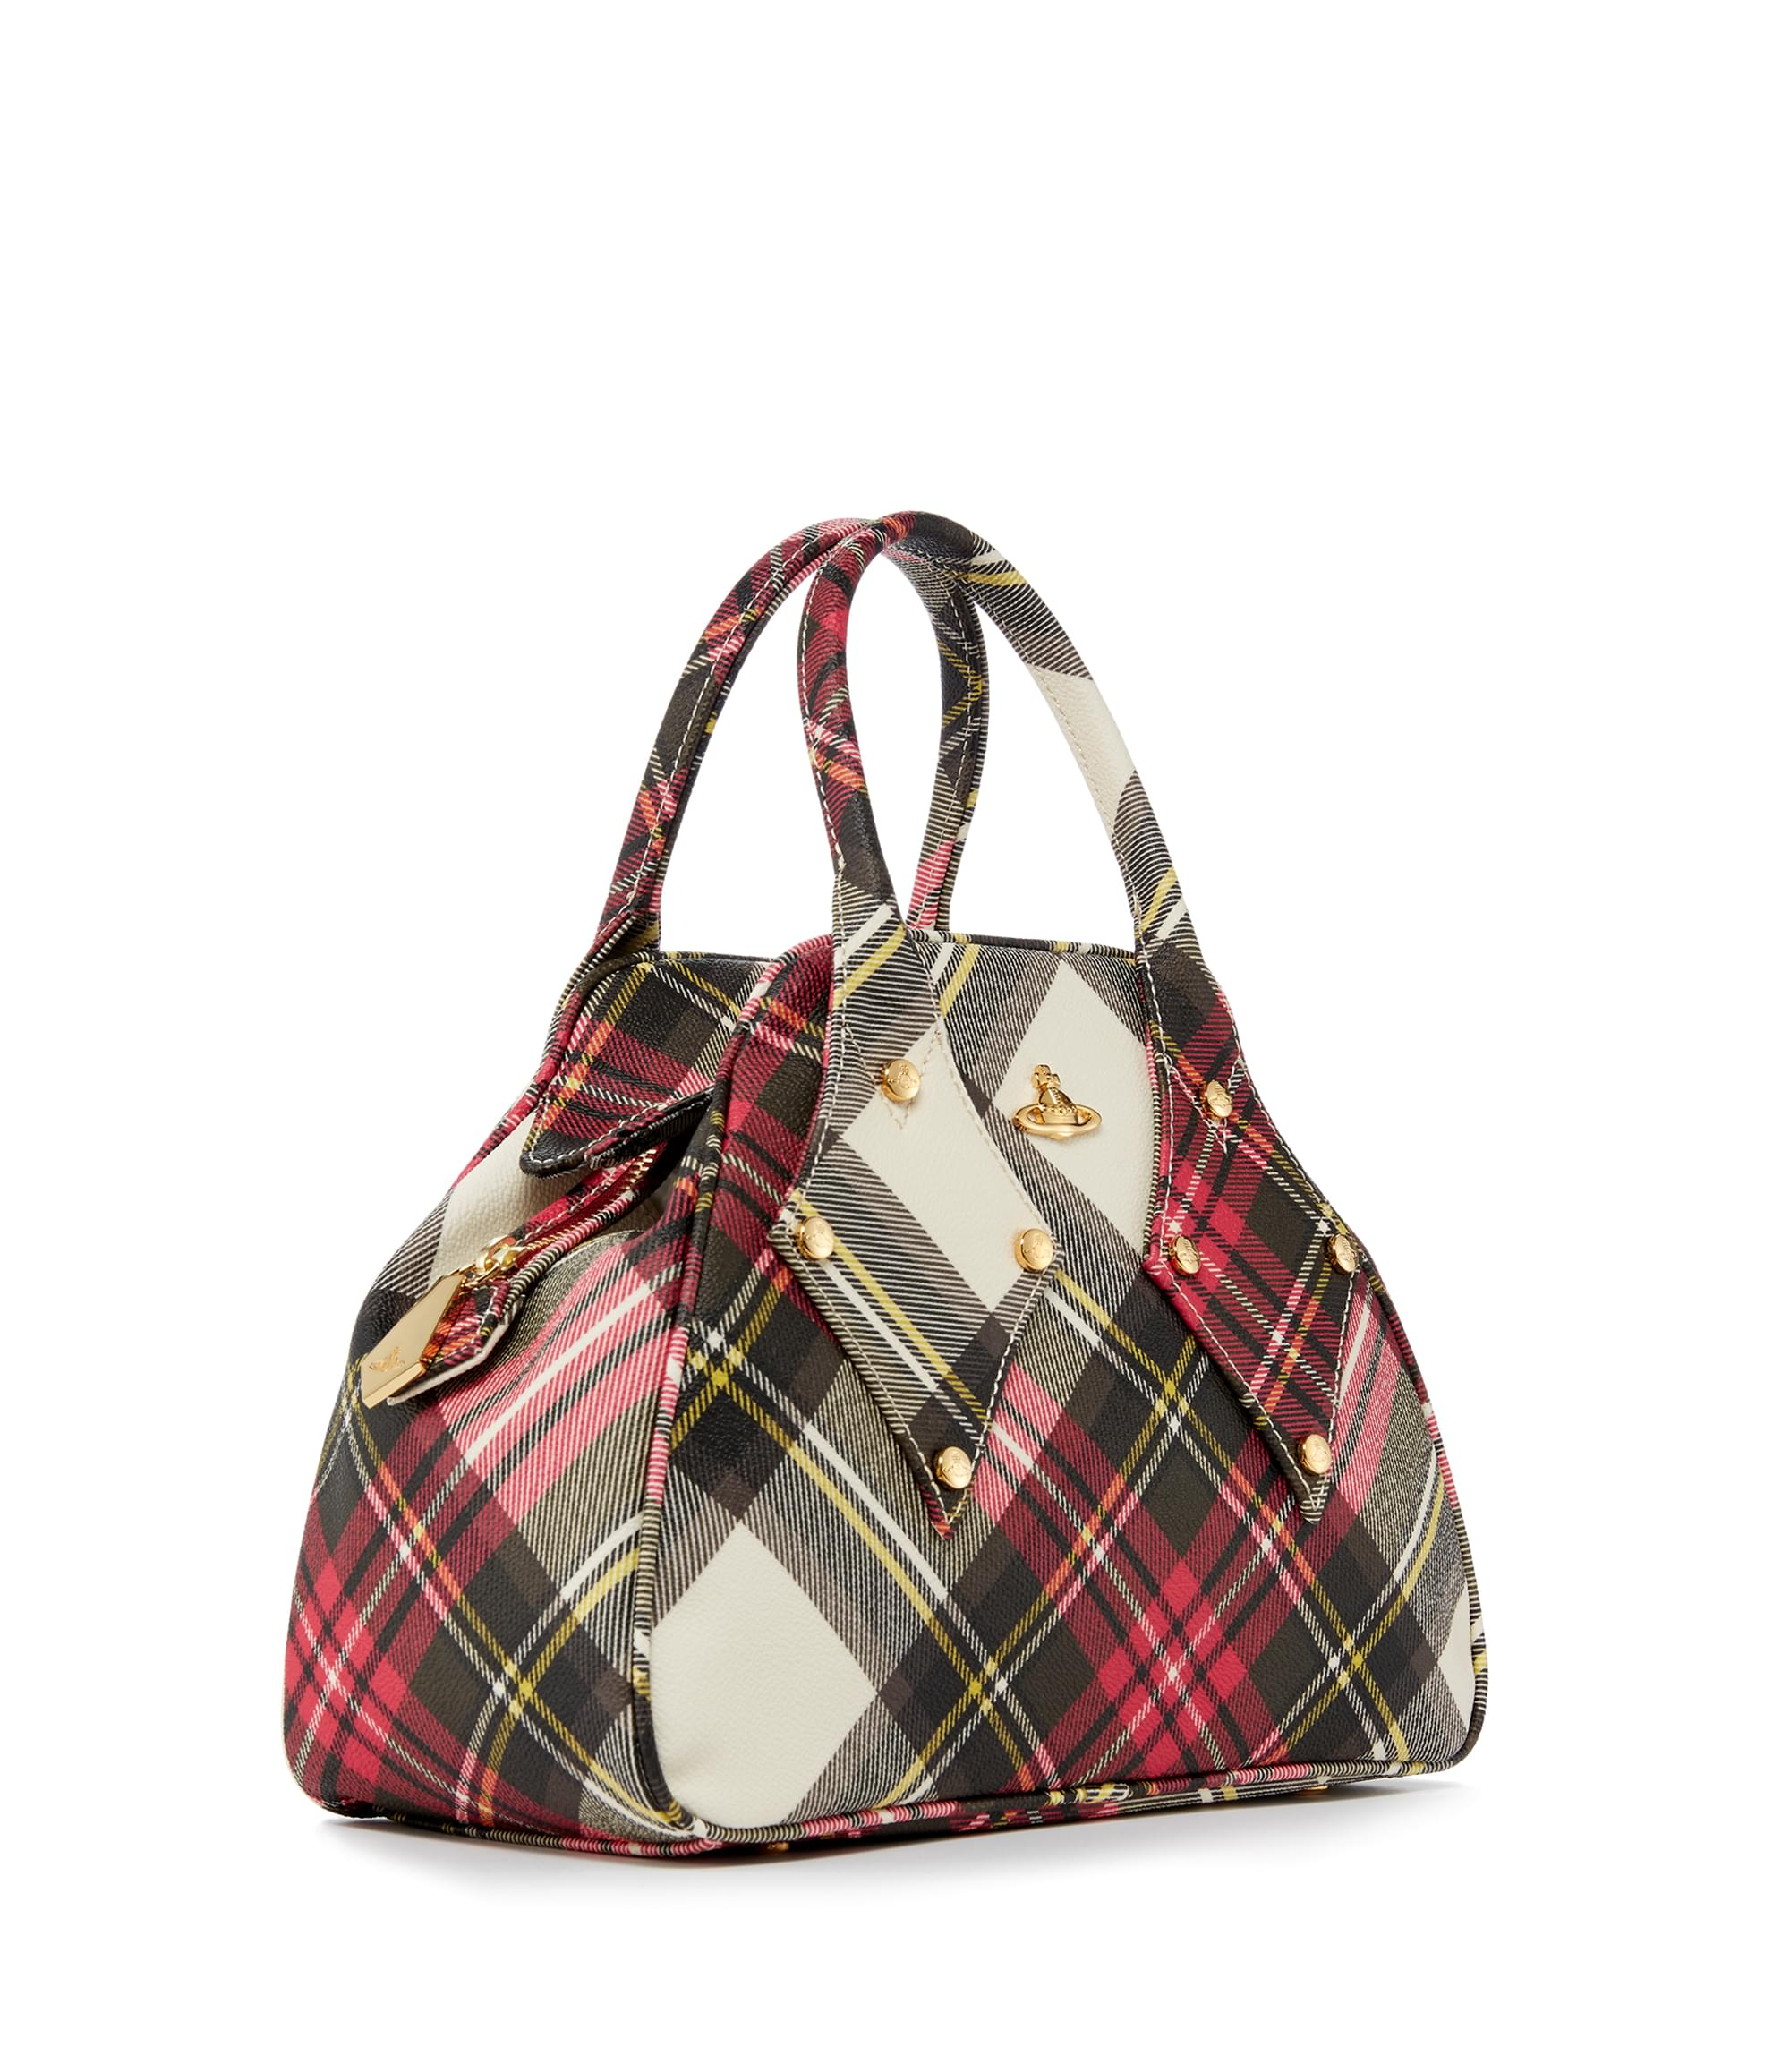 Vivienne Westwood Derby Bag 6673 New Exhibition